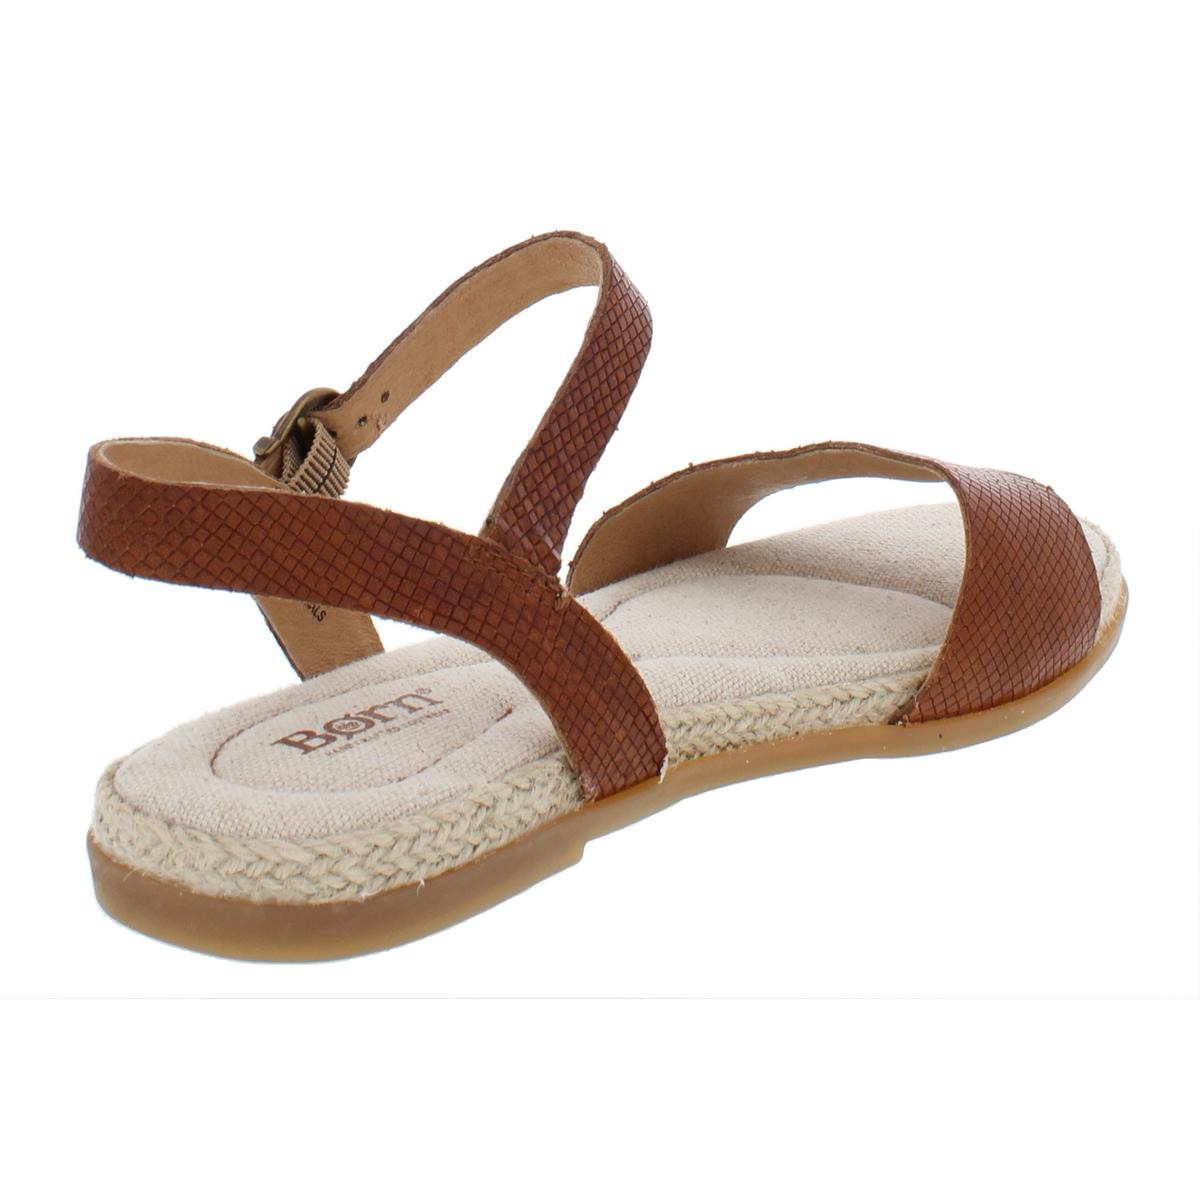 a051787c3a91 Born Welch Ankle Strap Flat Sandals Brown 8 US   39 EU for sale ...